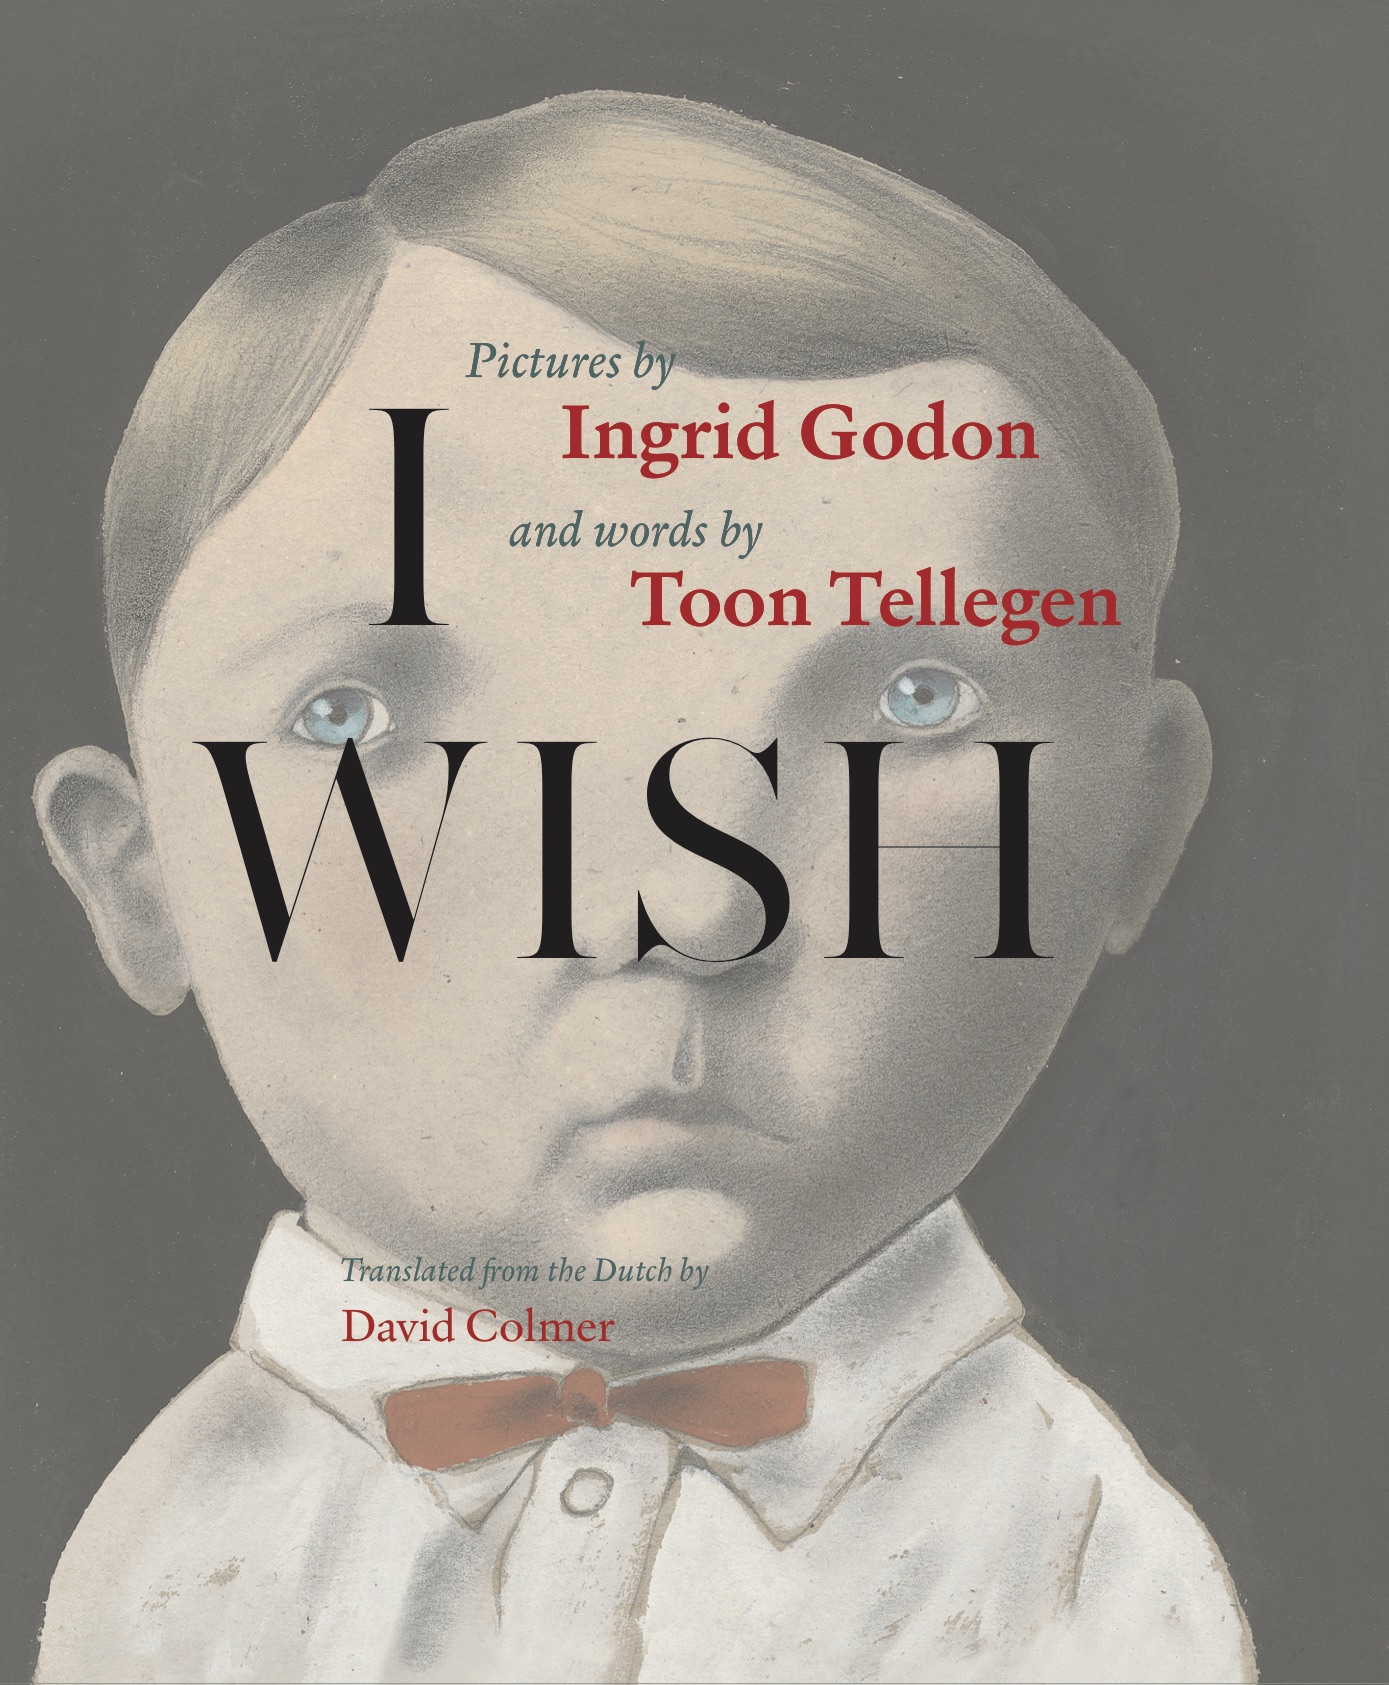 Book cover, showing a naive drawing of a young boy with a white shirt and a red bow tie, with superscript text that reads in large letters